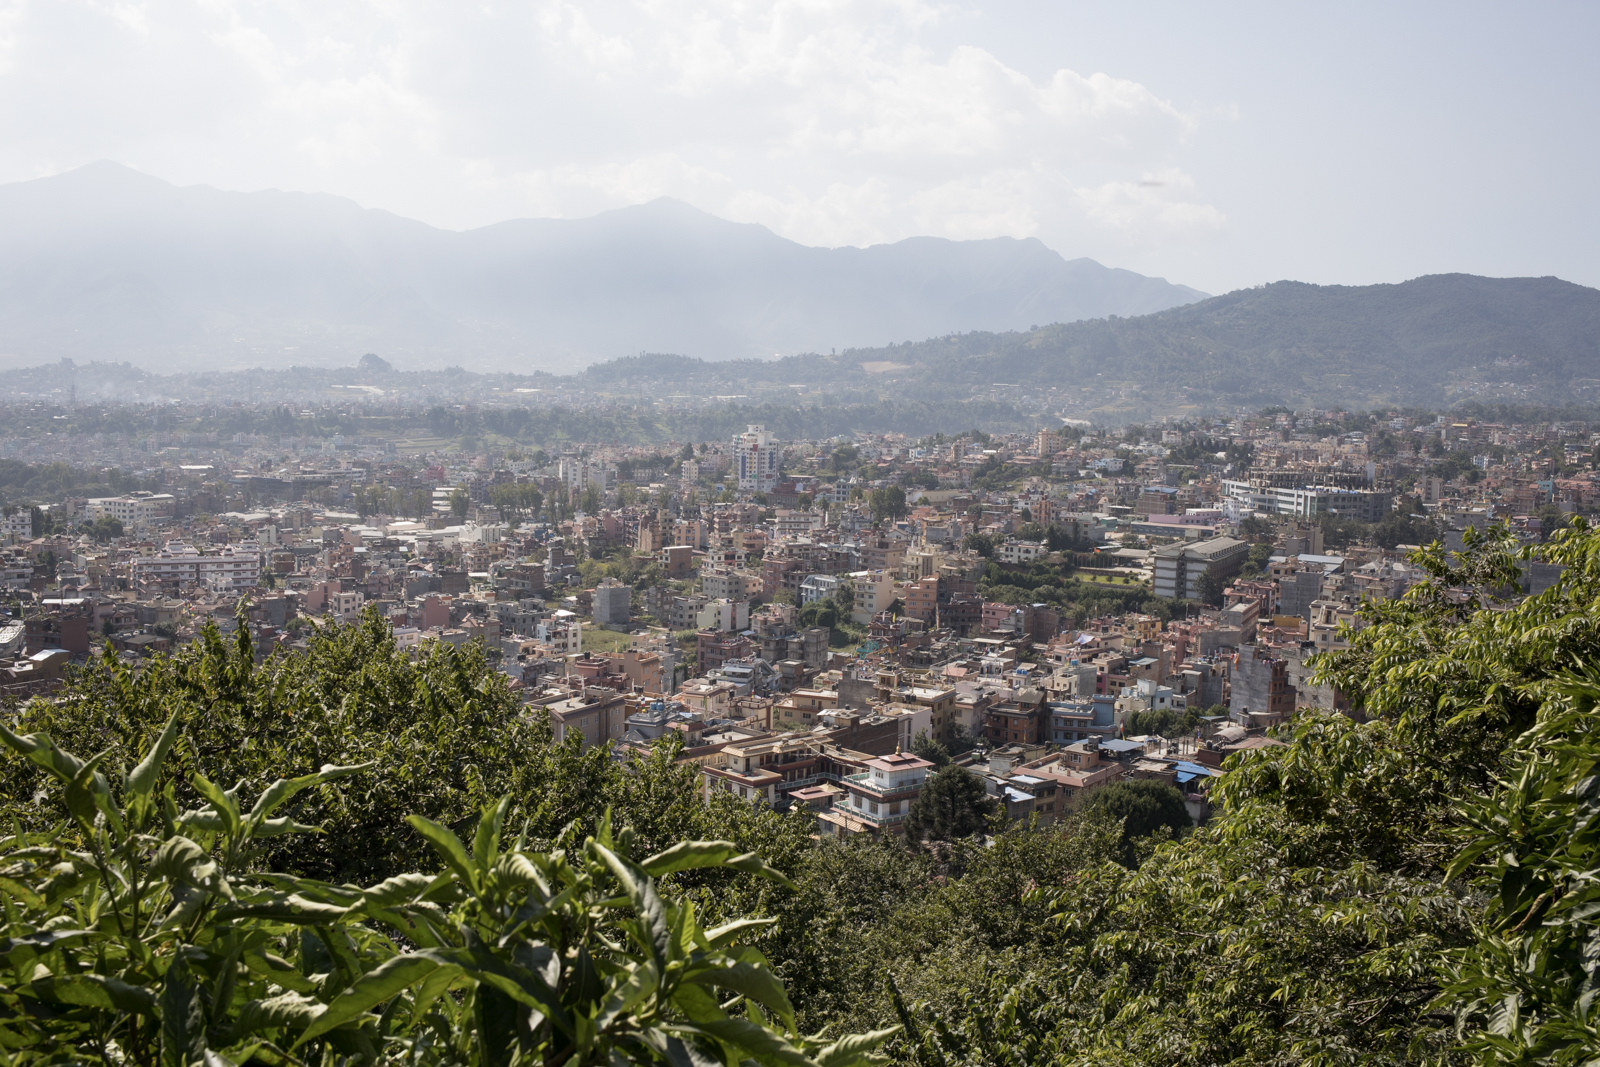 A view of Kathmandu from the hilltop temple, Swayambhunath.